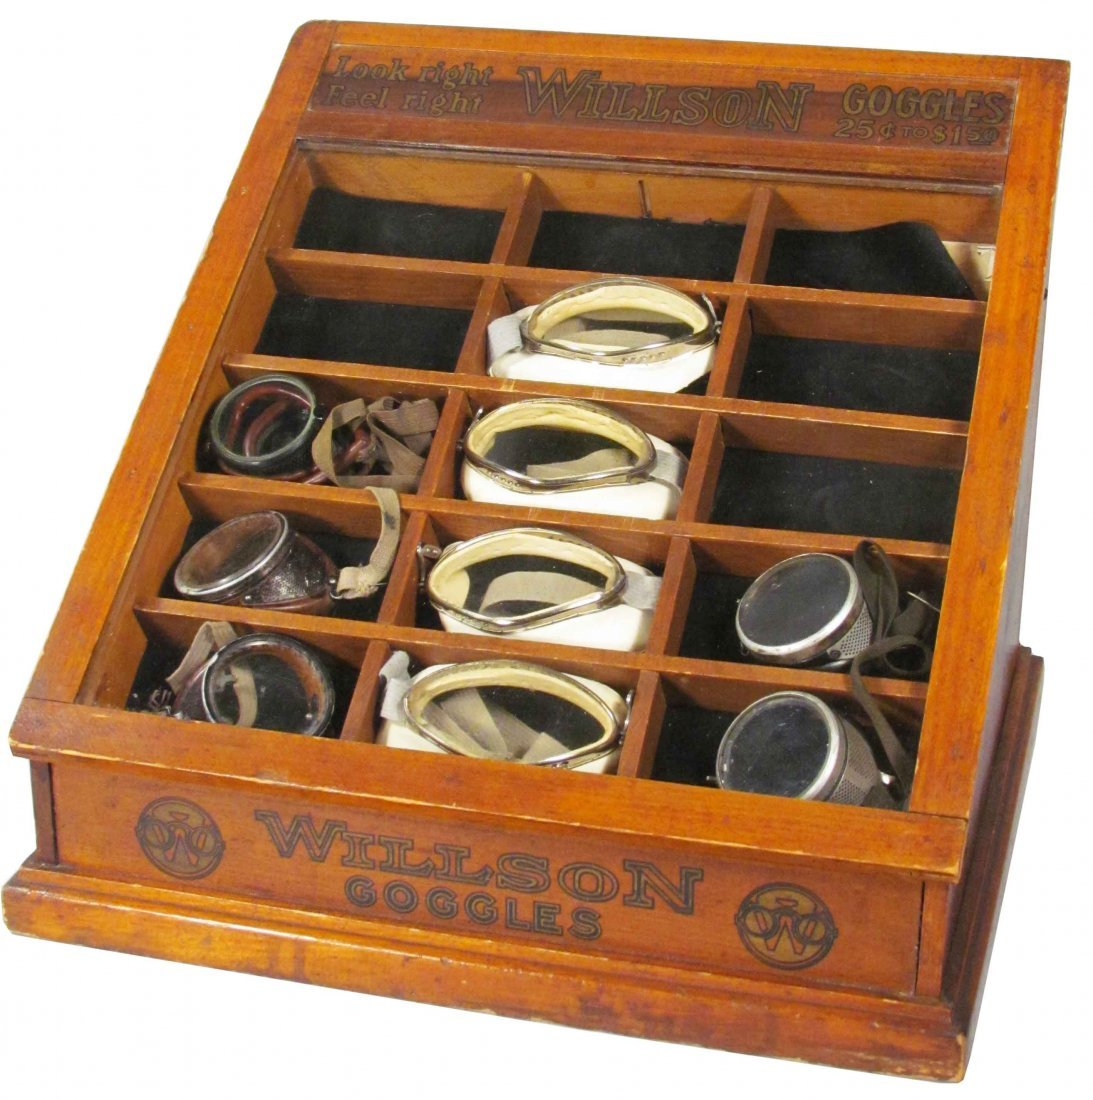 Wilson Goggles Store Display Case